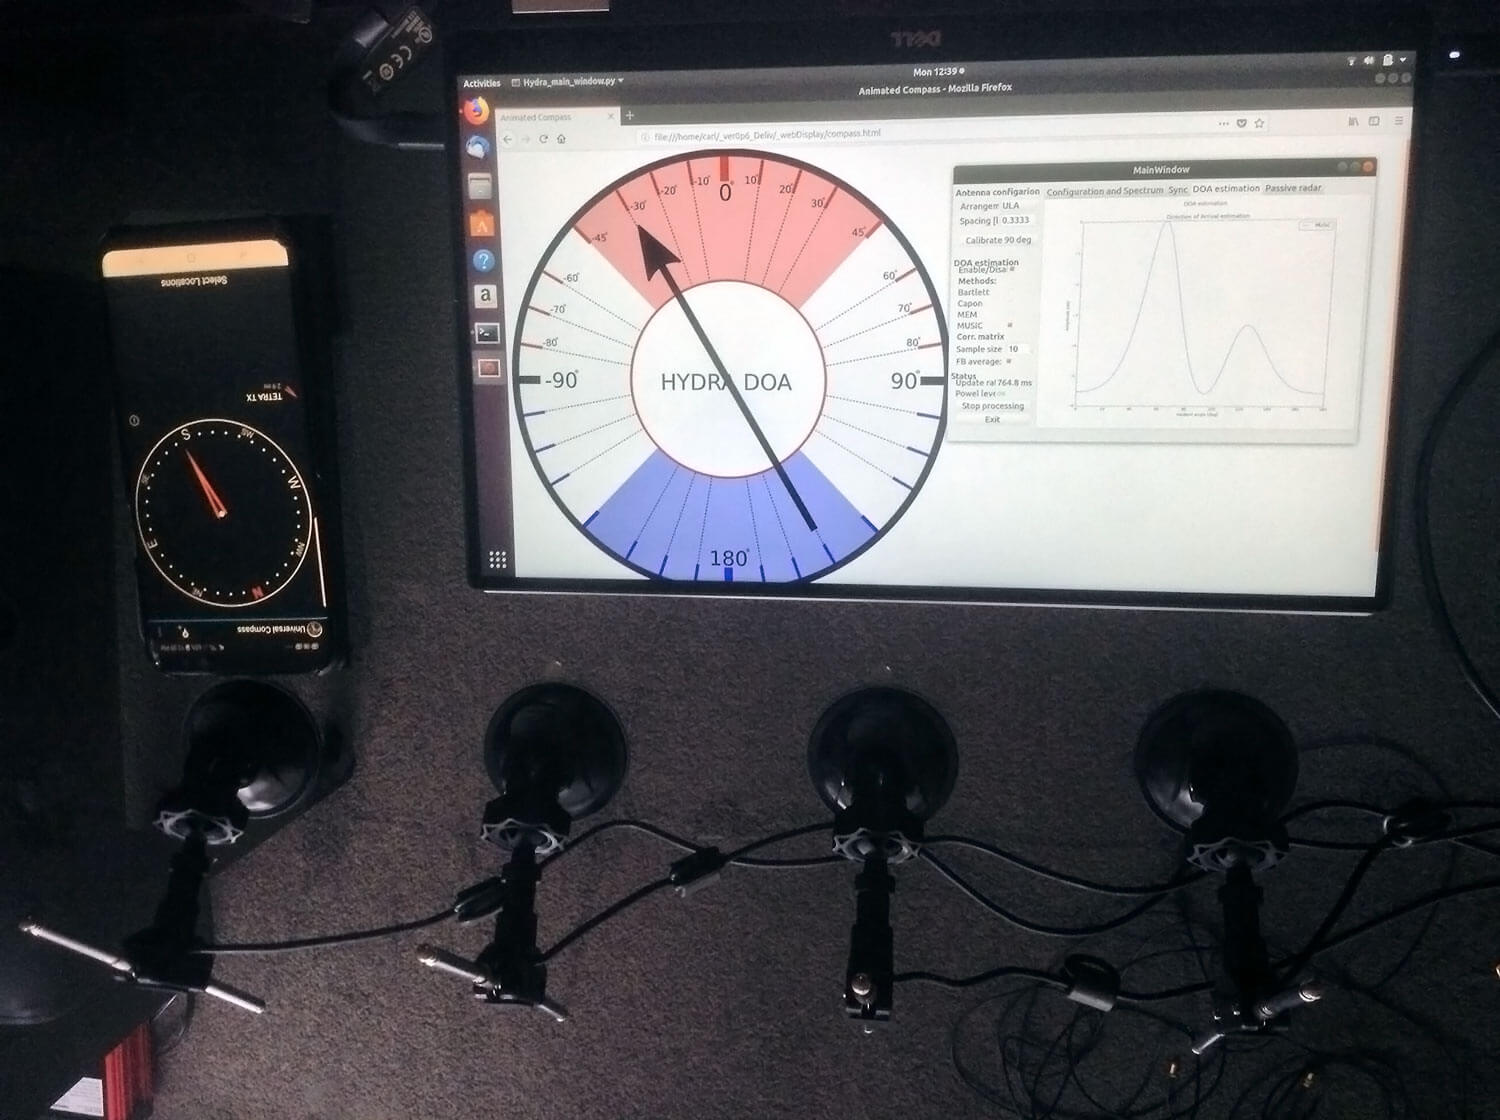 Finding the direction of a TETRA Transmitter